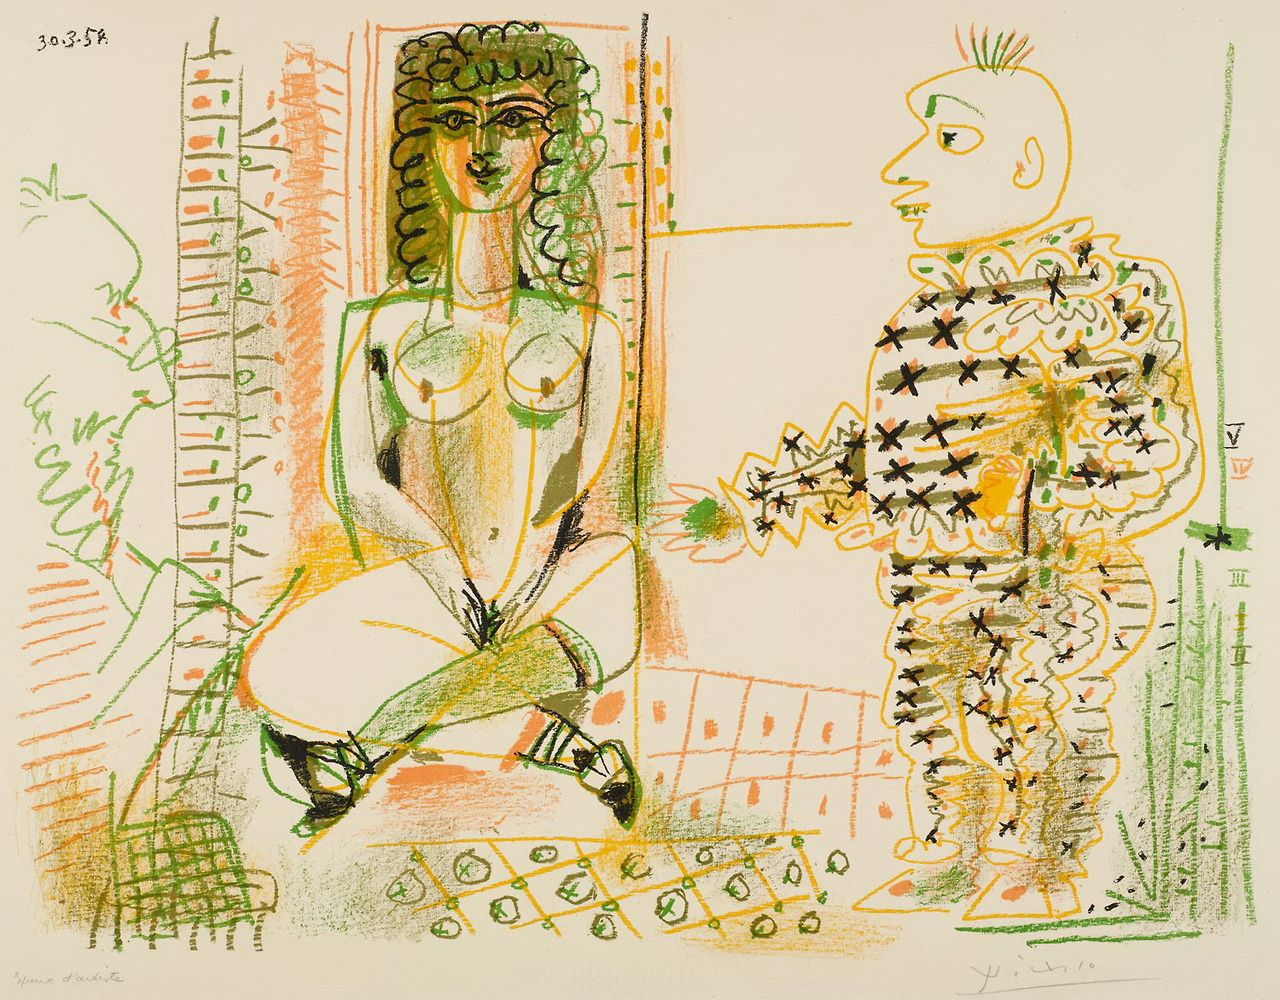 workman: hipinuff: Pablo Picasso (Spanish: 1881 – 1973), The painter and his model, 1954. Colored lithograph, 50x64 cm.